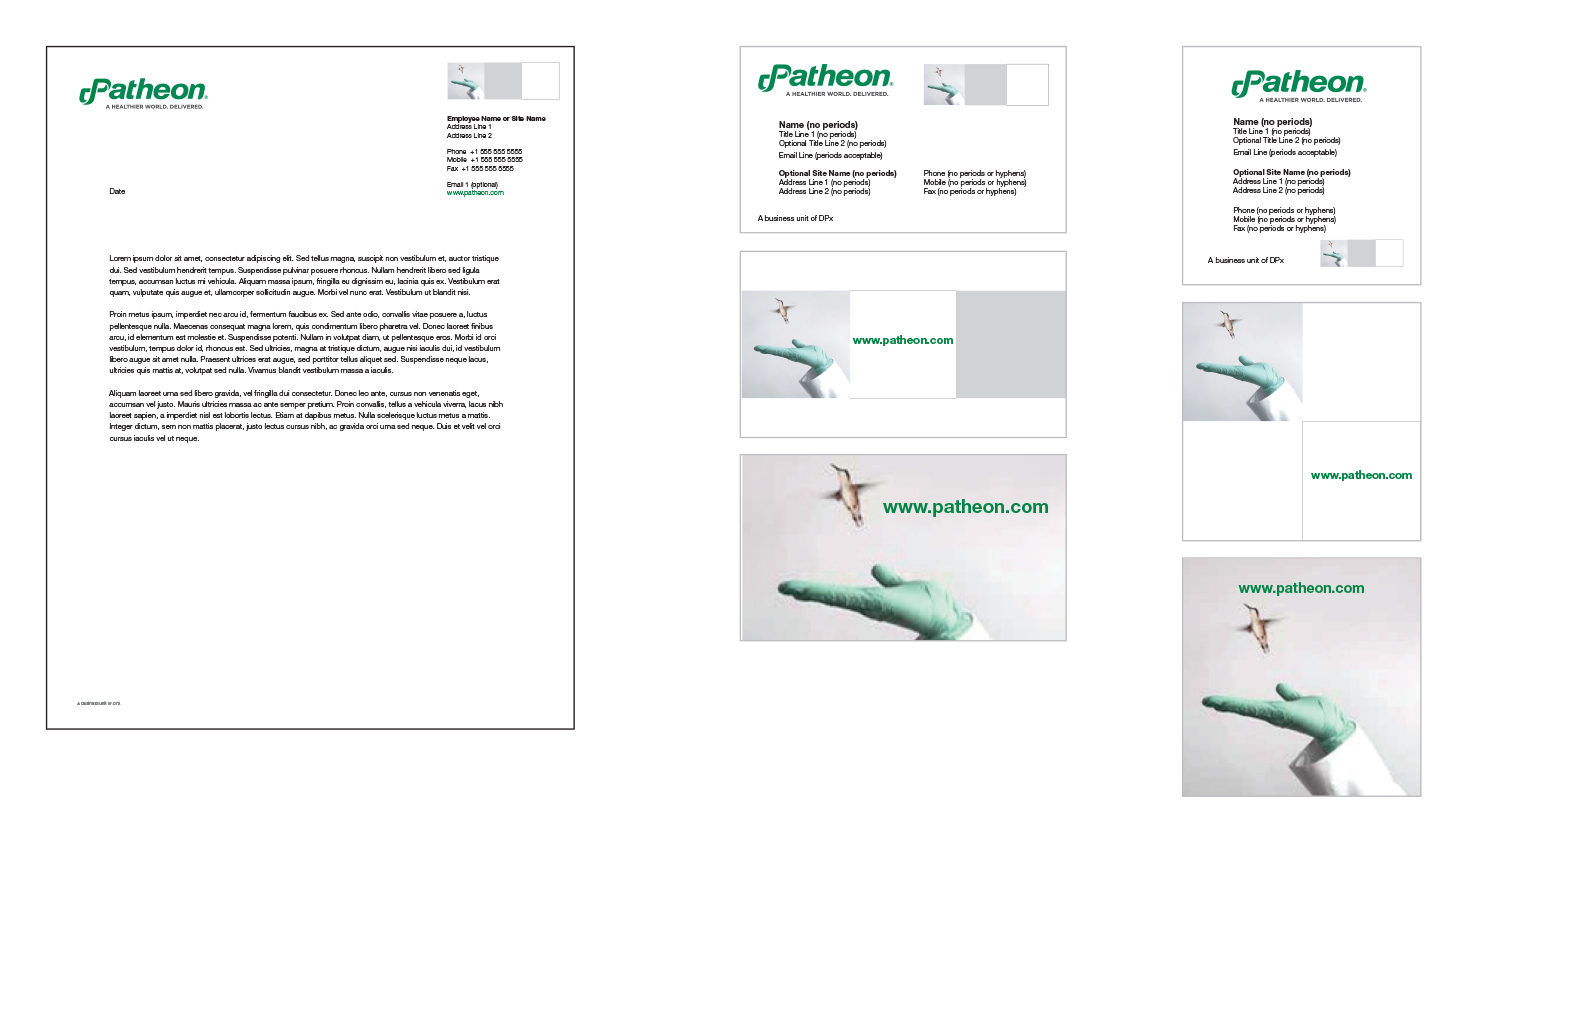 Brand Identity – letterhead, logo, business cards, envelopes